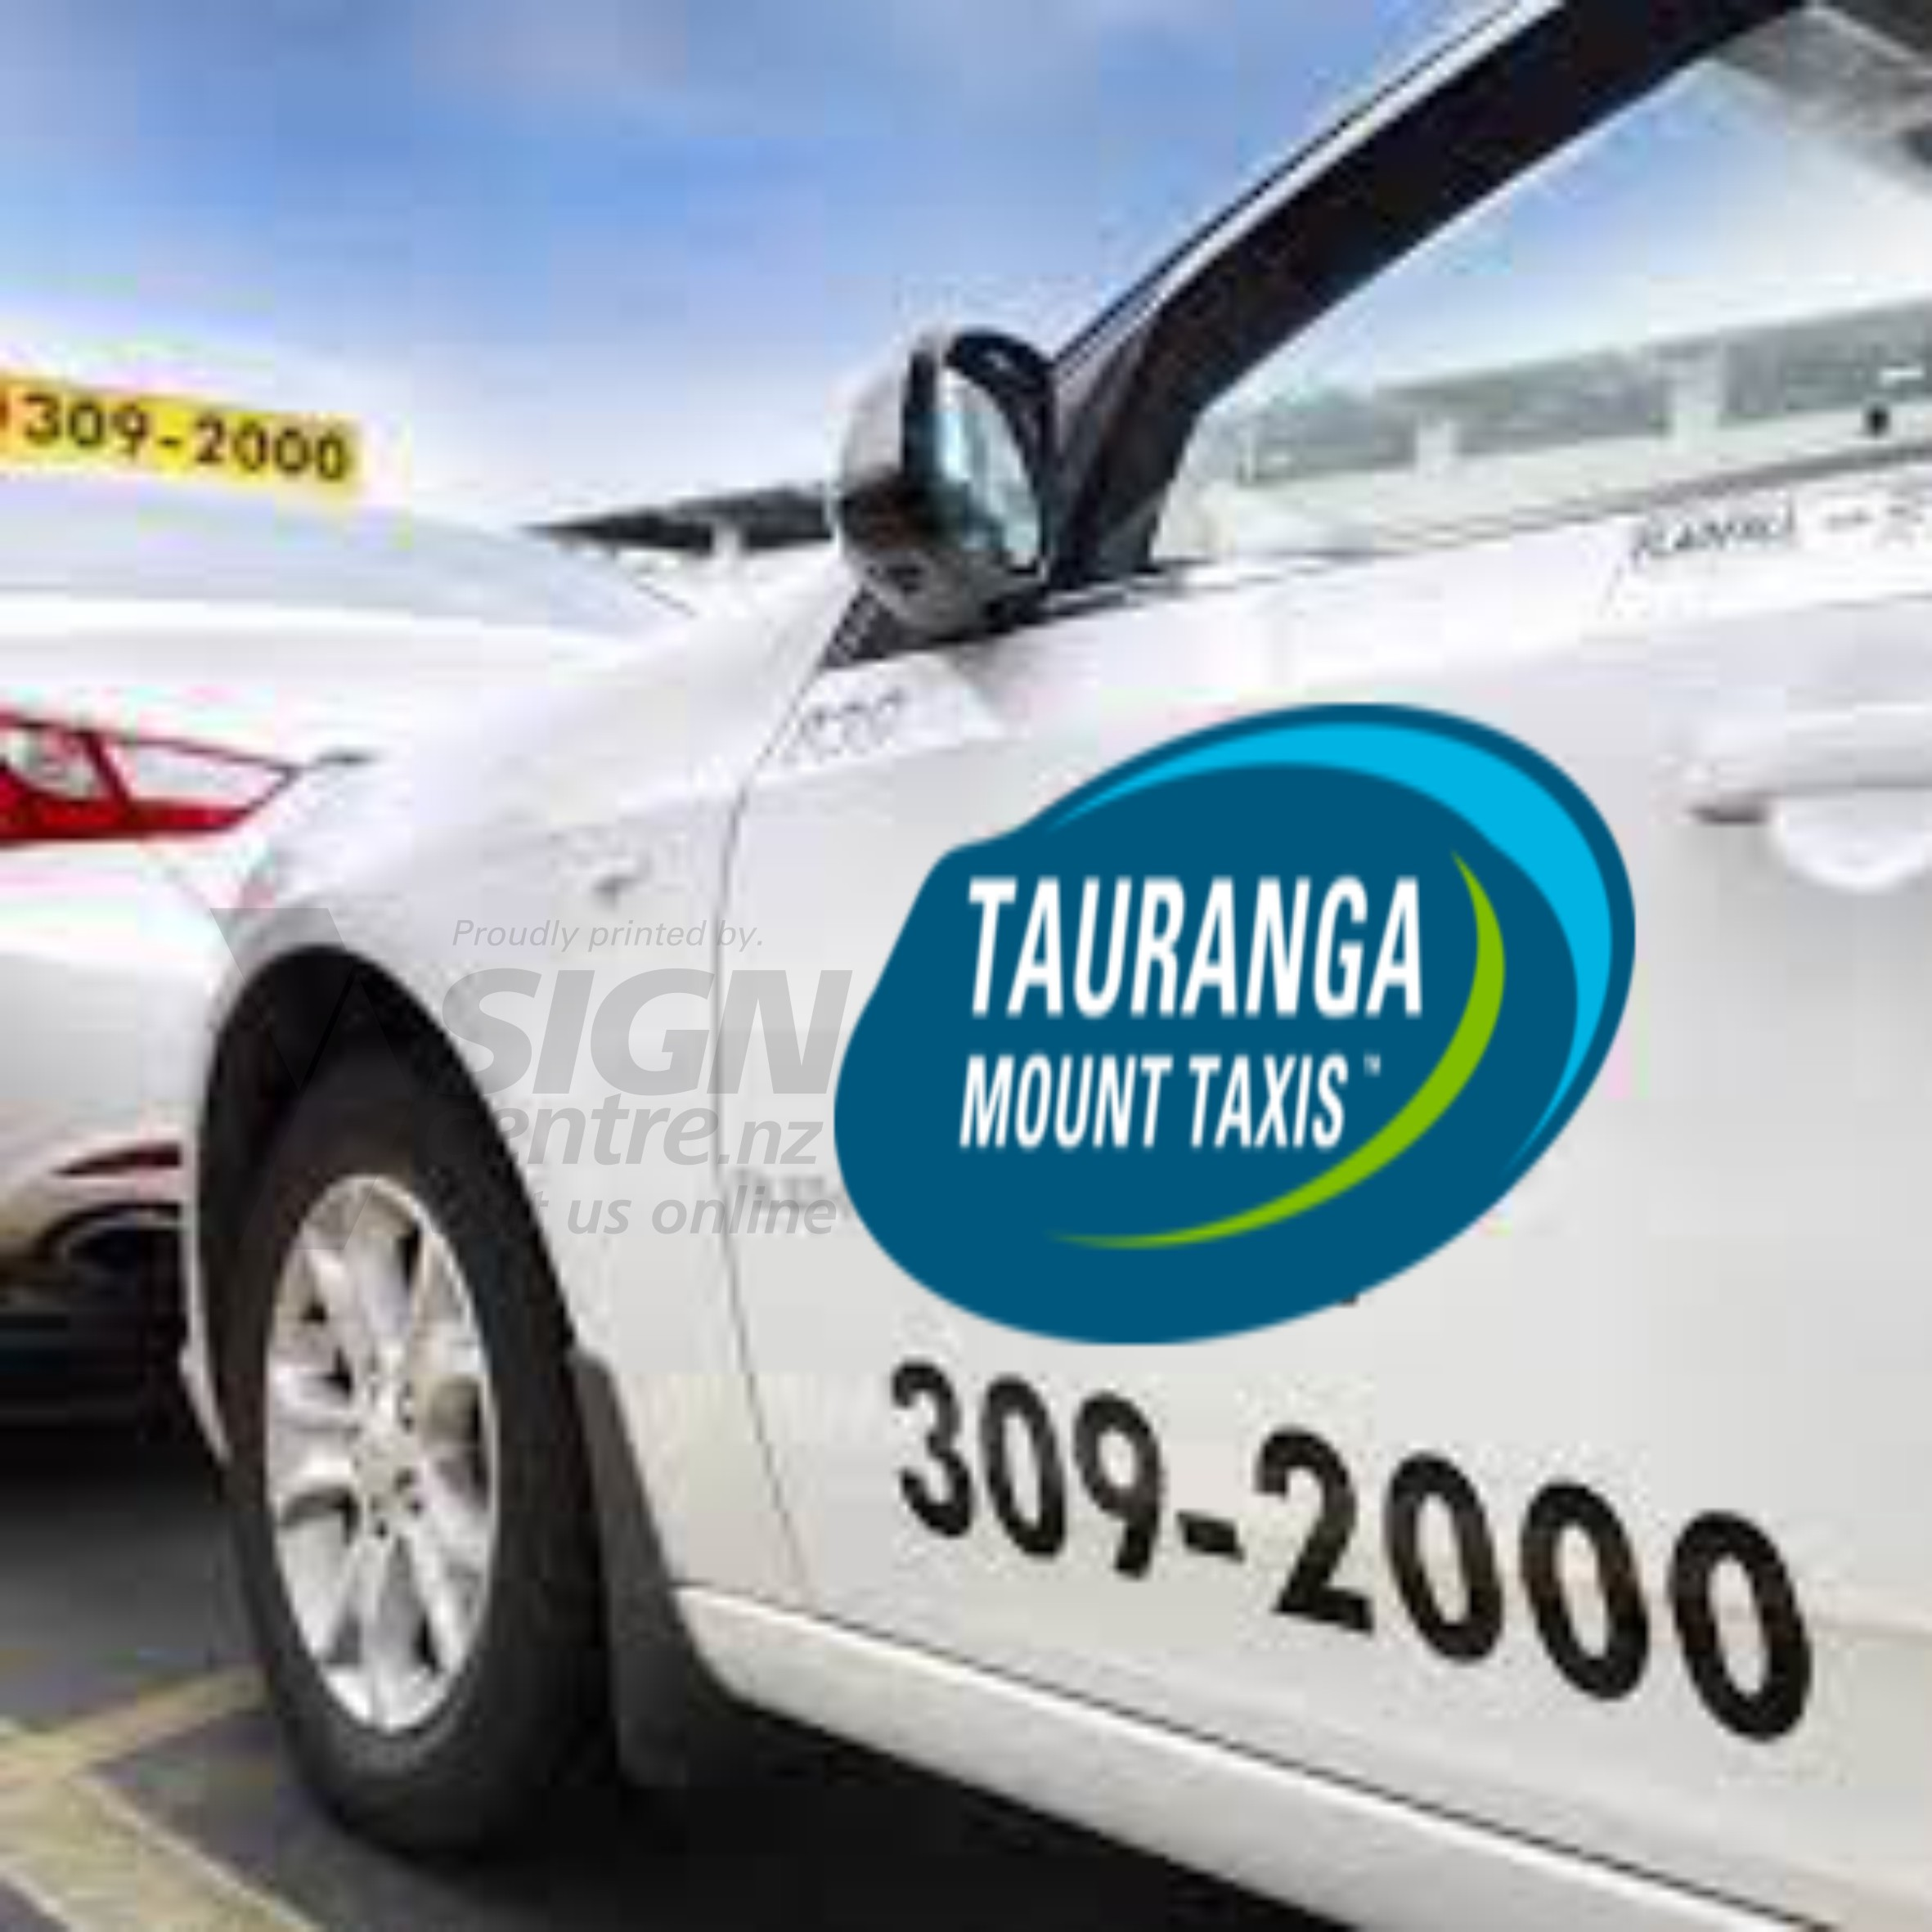 TAXI MAGNETIC SIGNS